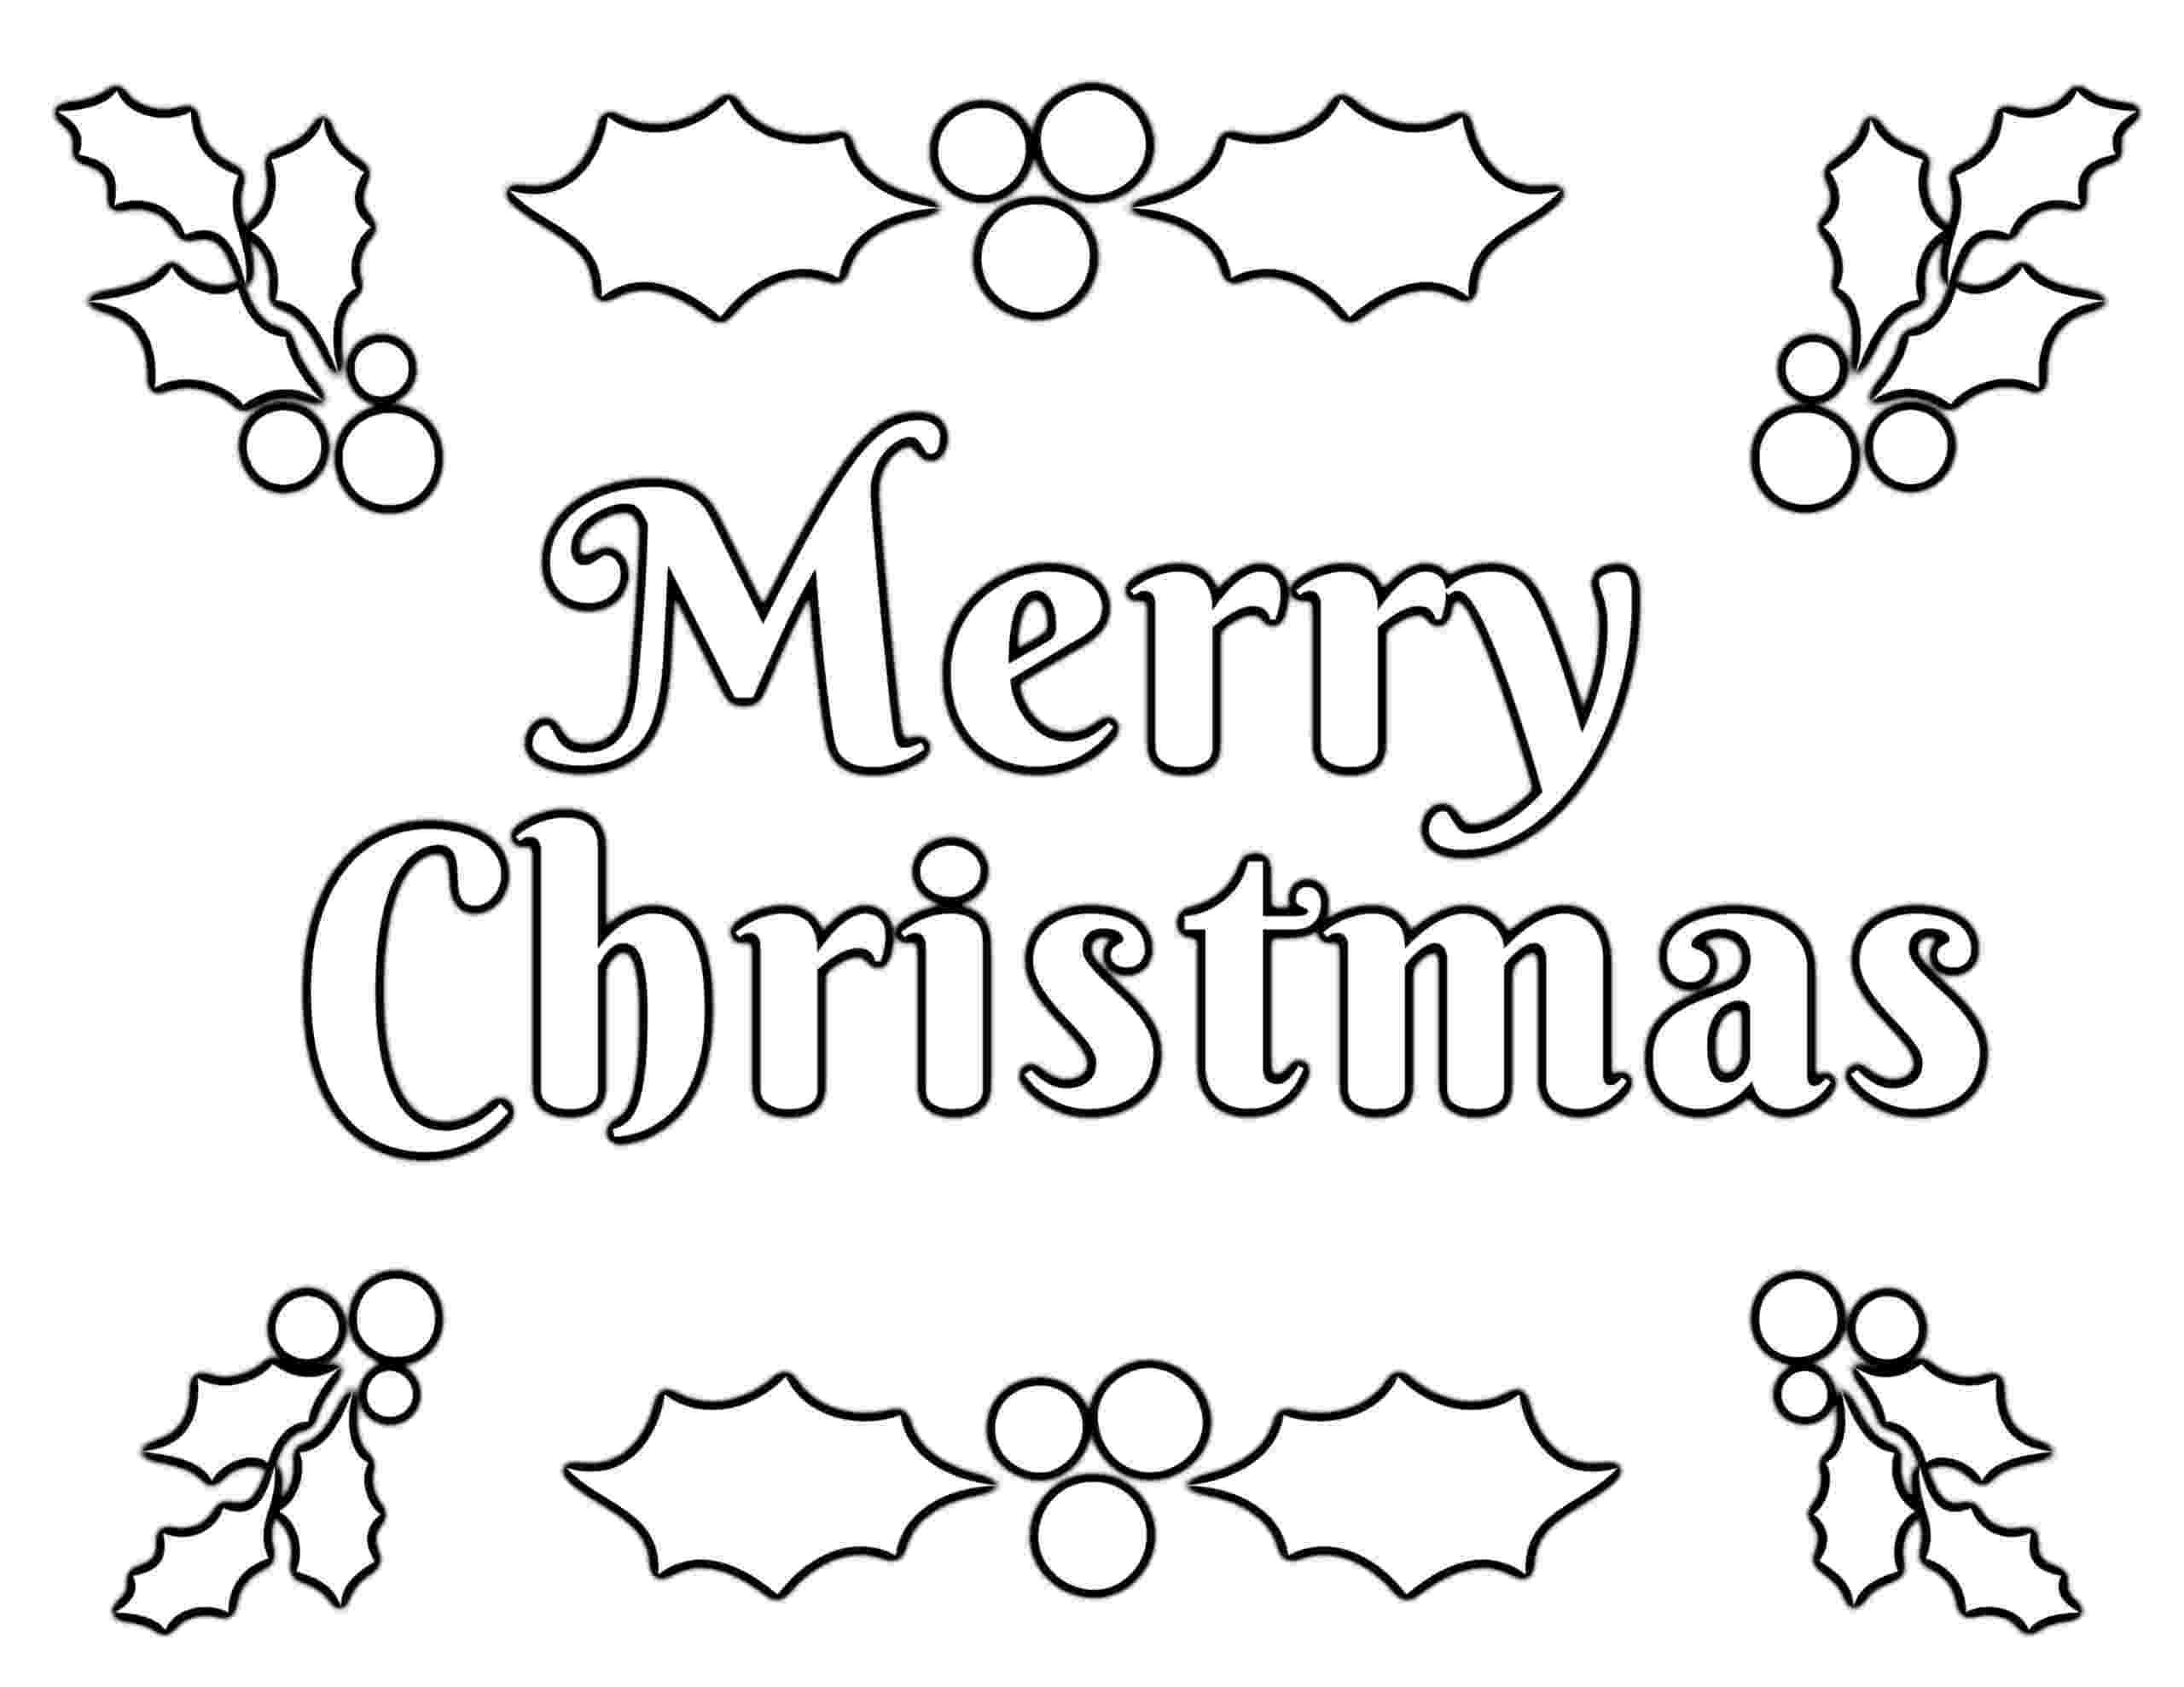 chirstmas coloring pages christmas coloring pages for kids ministry to children coloring chirstmas pages